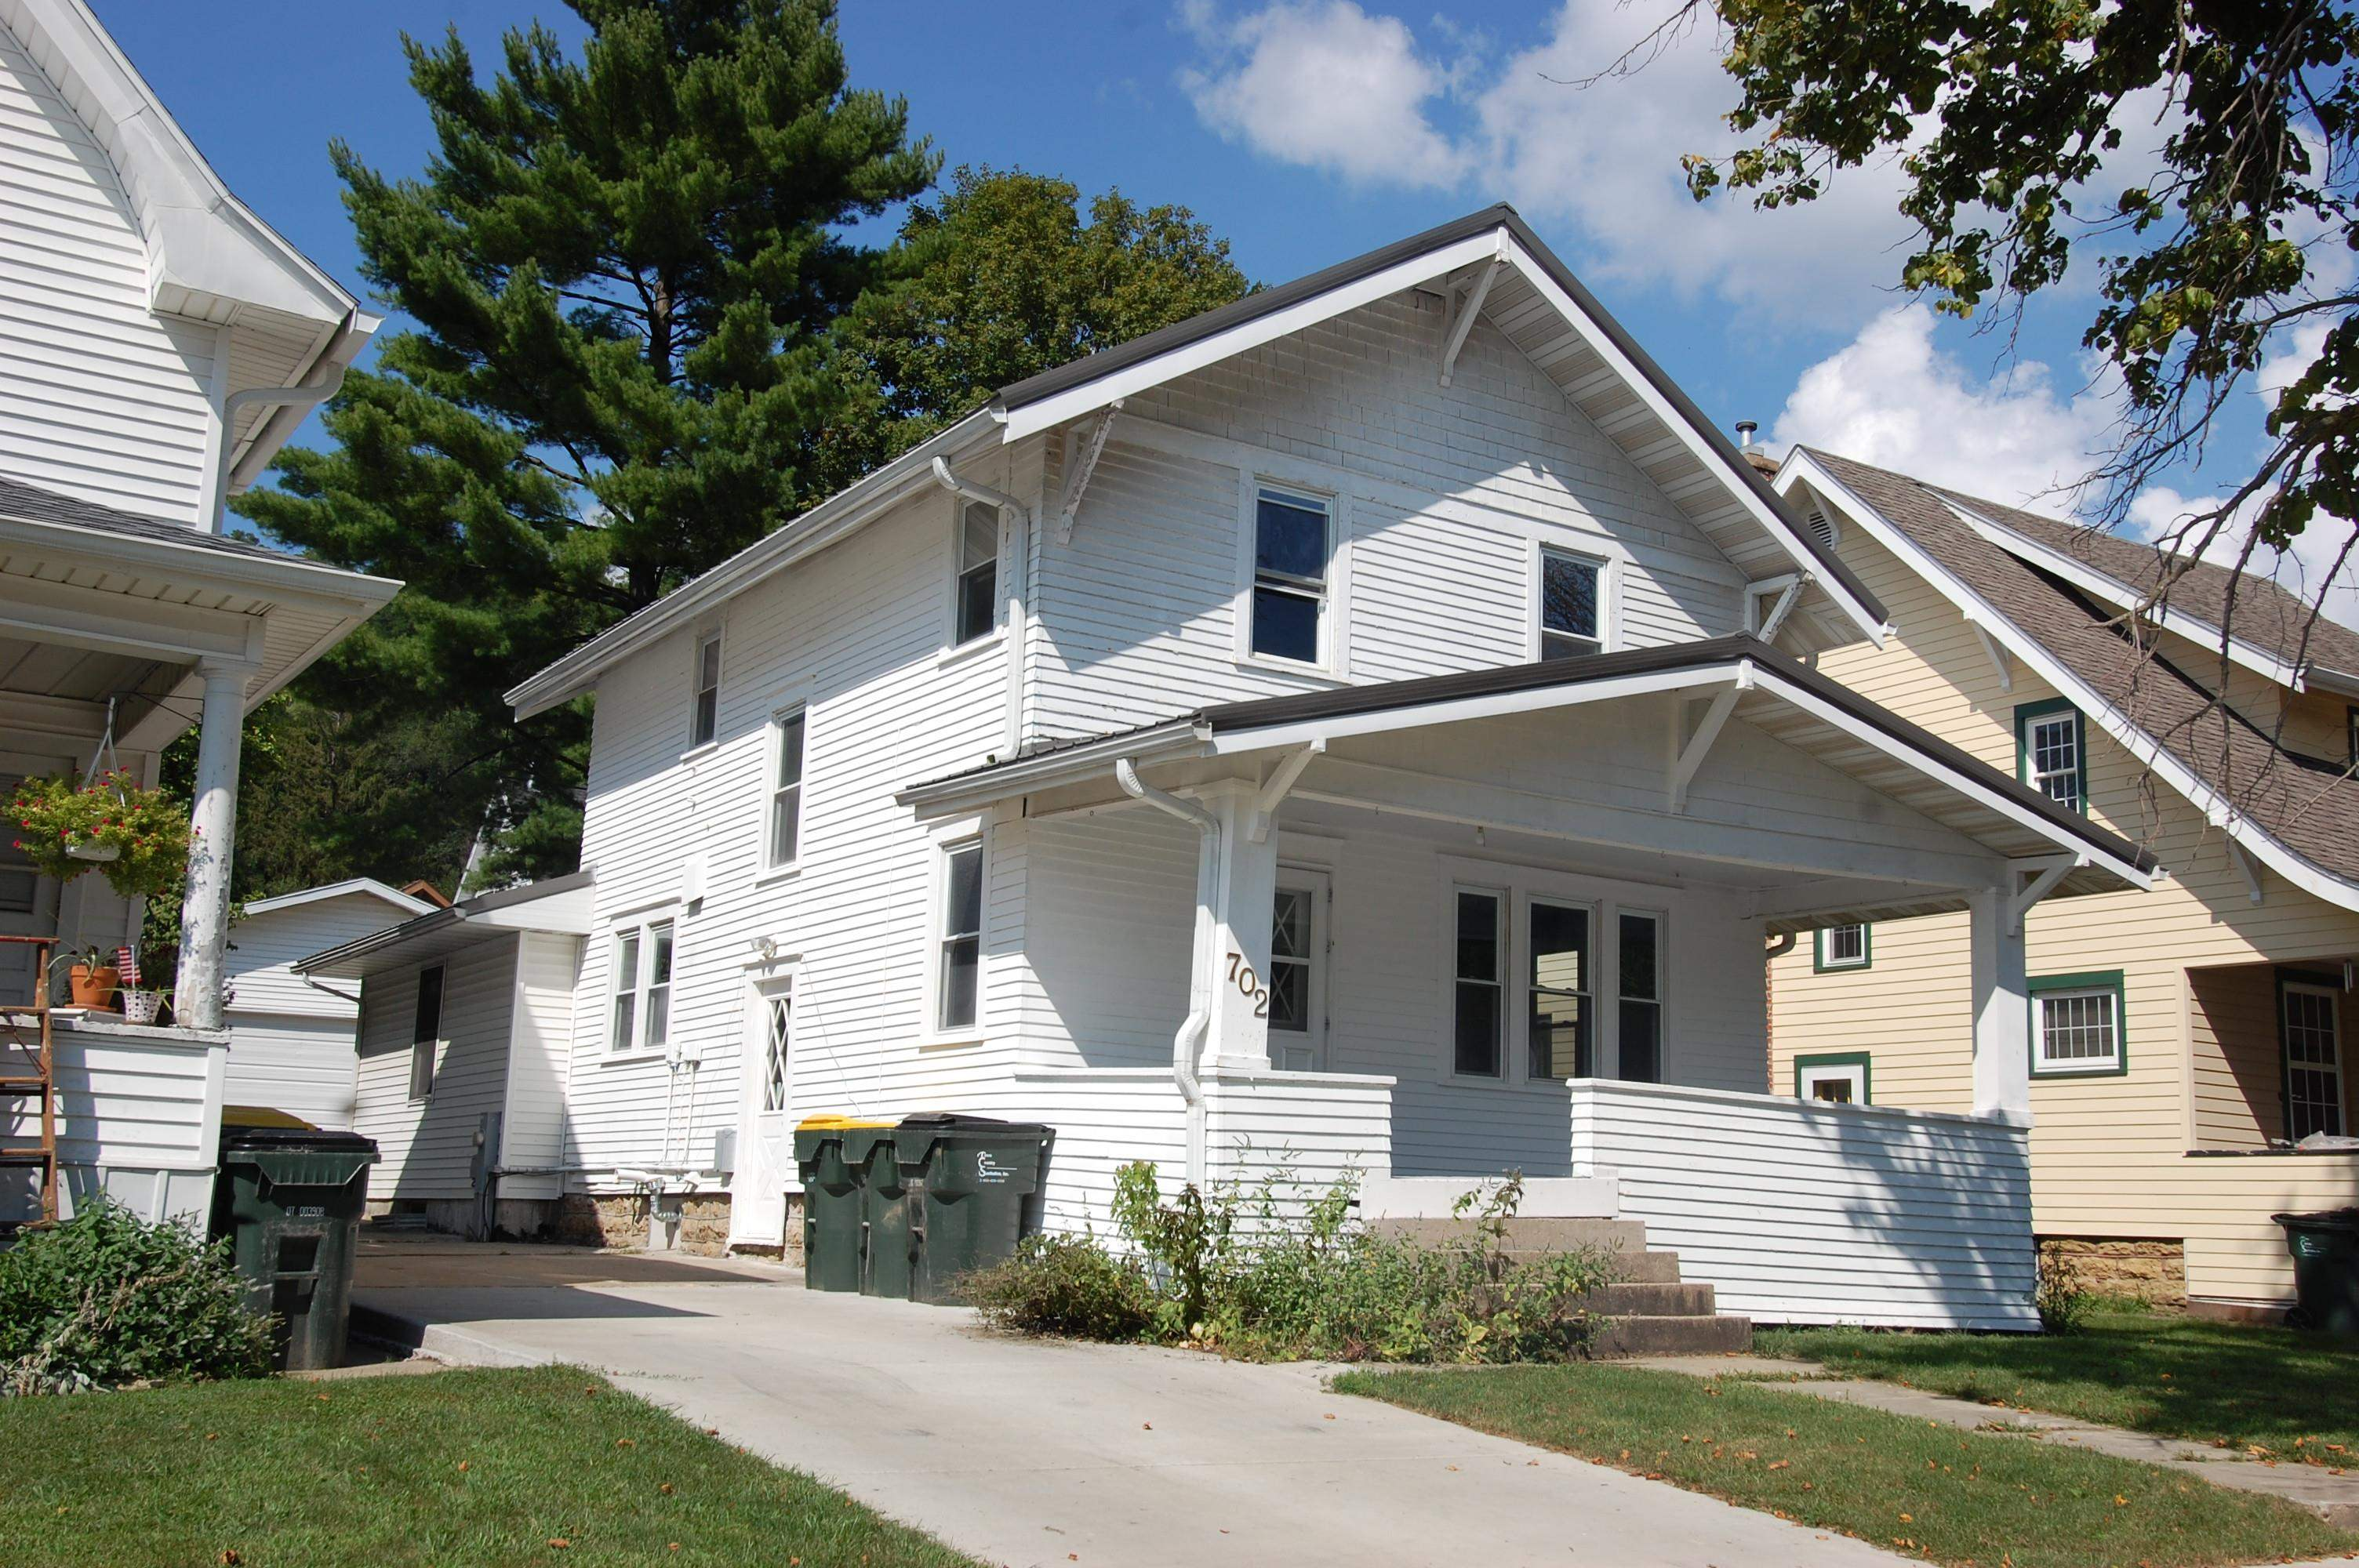 702 Haseltine St E, Richland Center, Wisconsin 53581-000, 4 Bedrooms Bedrooms, ,2 BathroomsBathrooms,Single Family,For Sale,Haseltine St,1918022